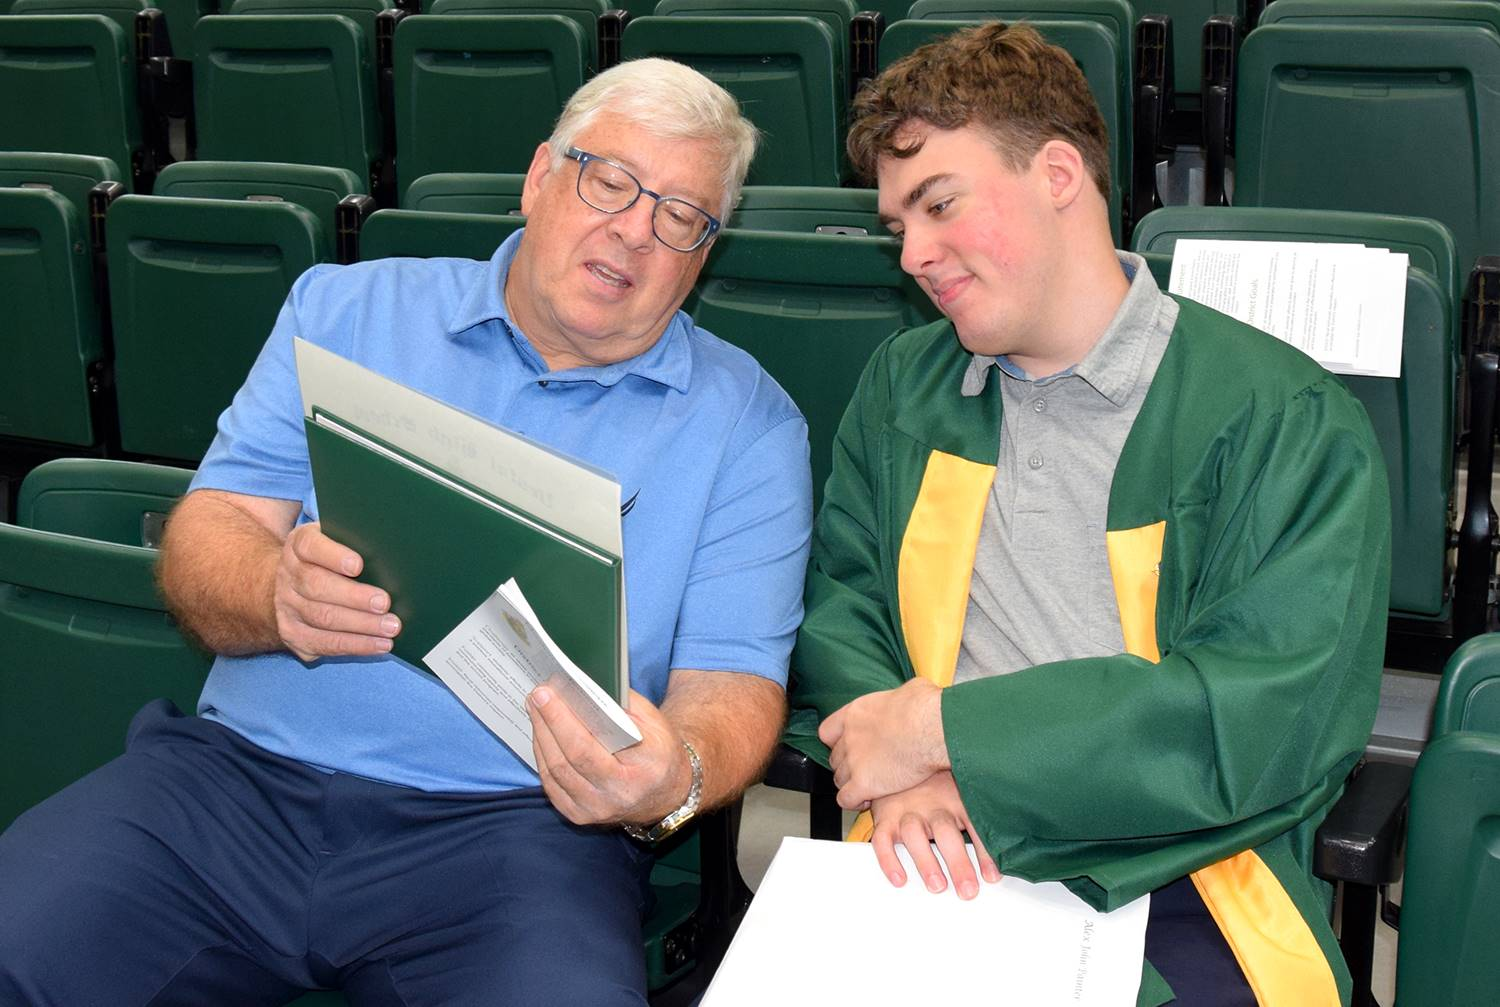 A Vestal High School graduate as he sits next to a male family member holding his diploma after his